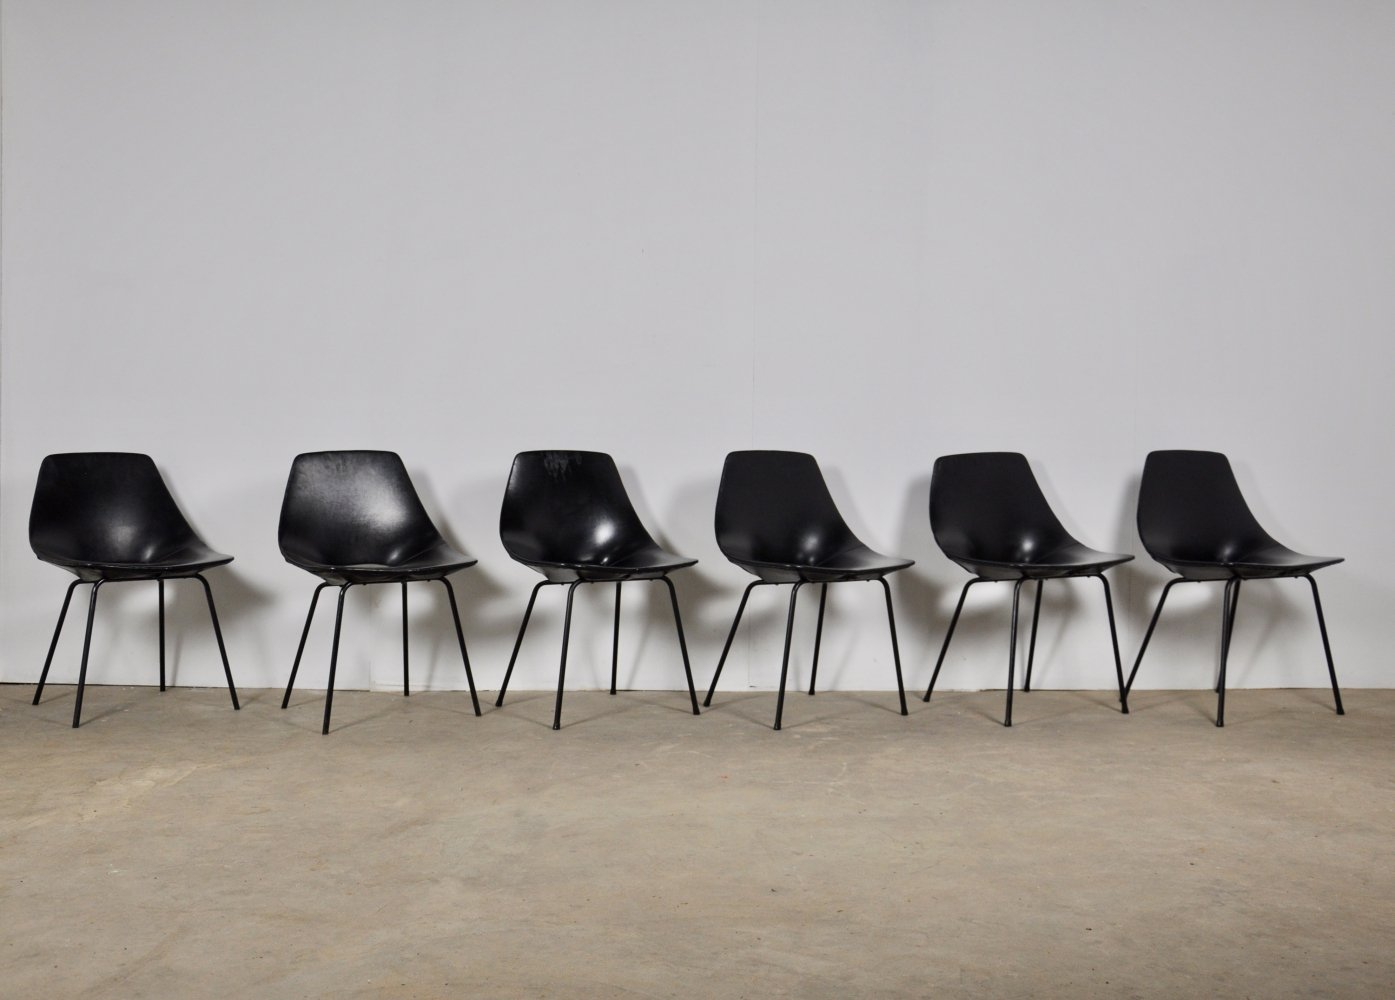 Set of 6 Tonneau Chairs by Pierre Guariche for Steiner, 1950s